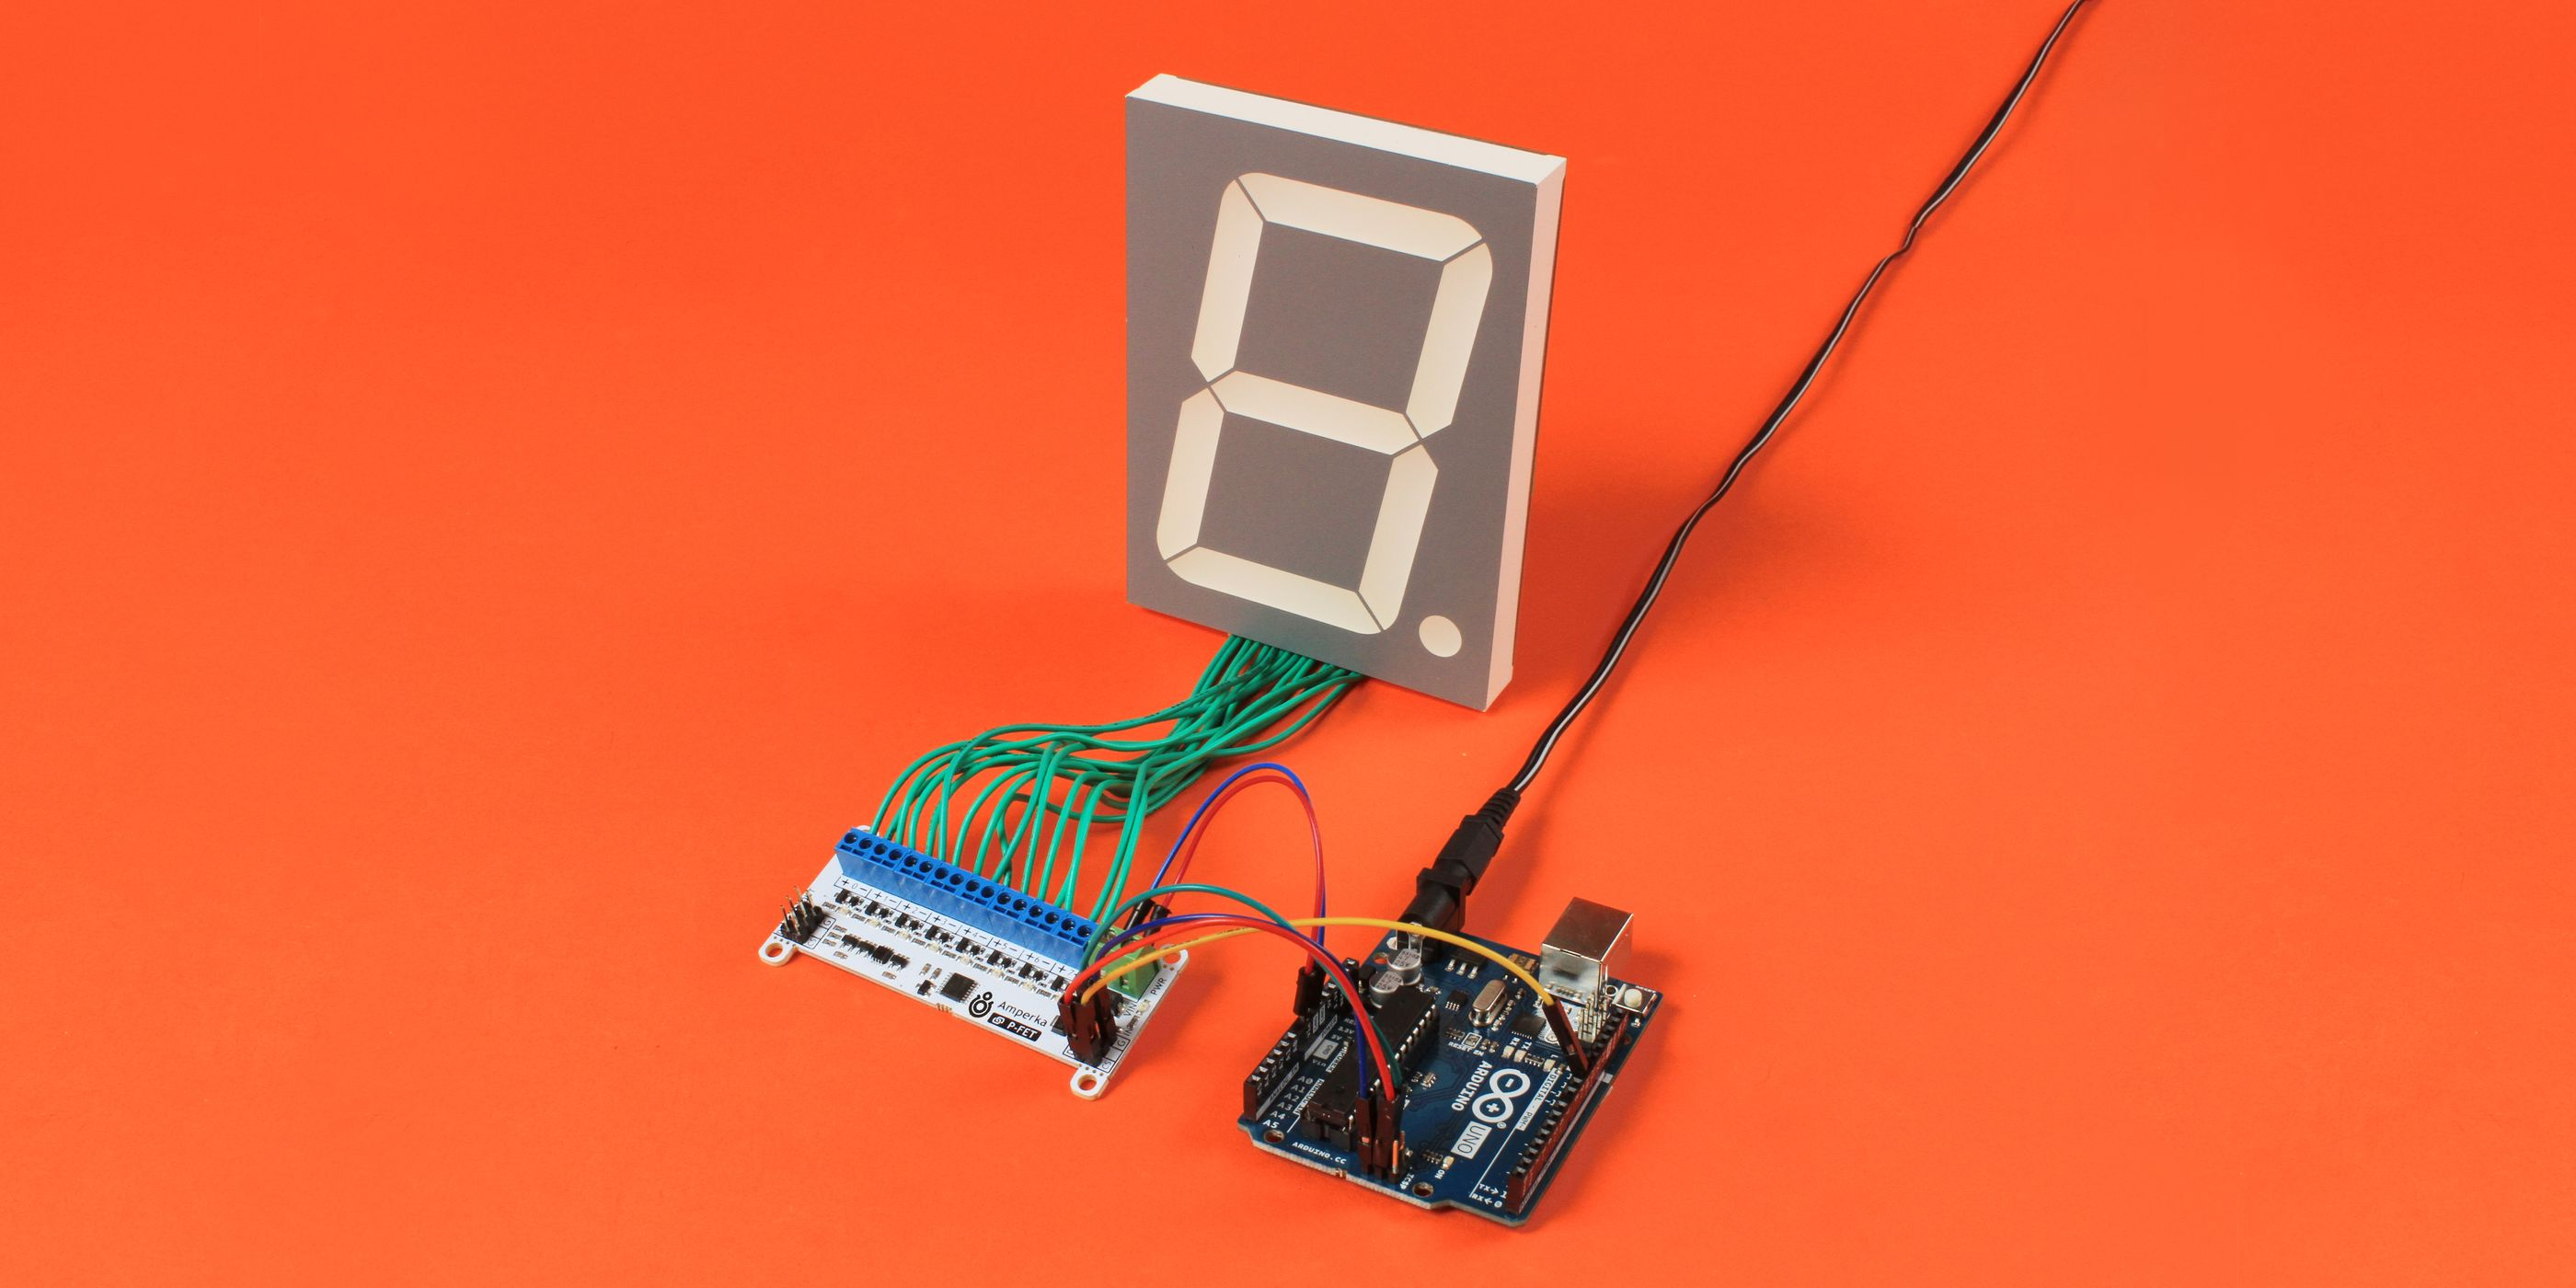 Octofet with 7-segment display photo